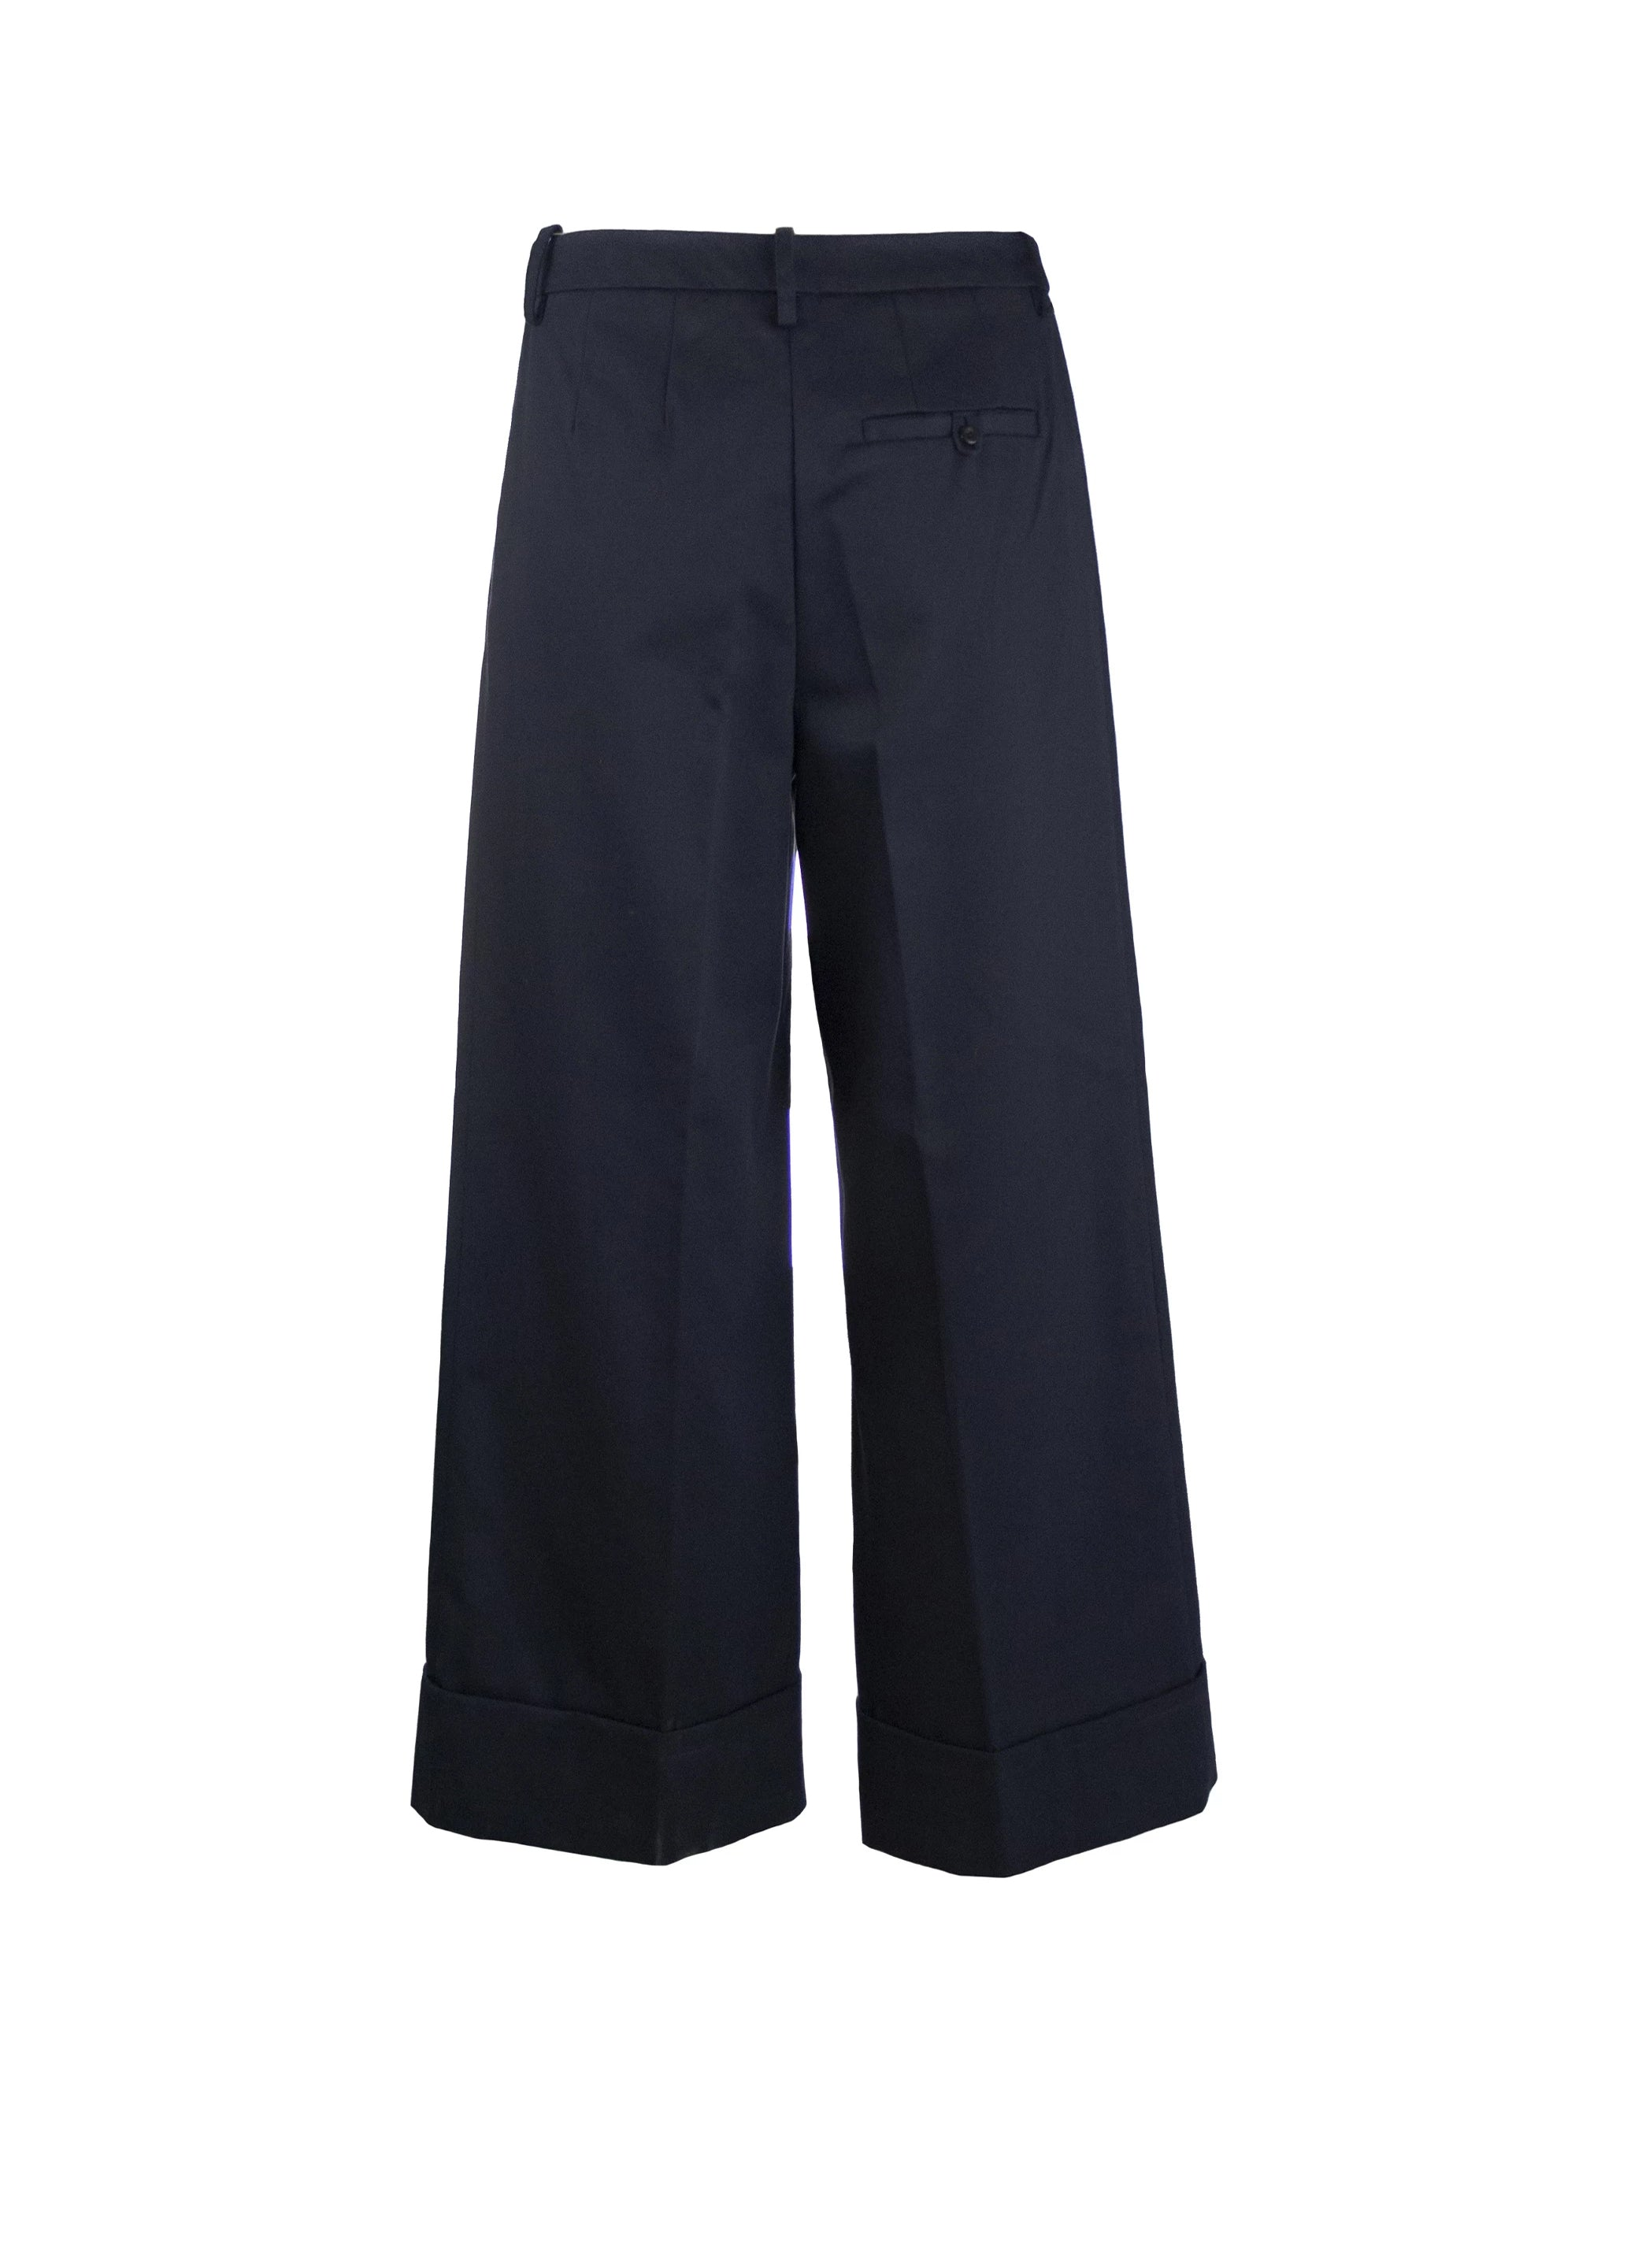 Twill Cuff Pant - Navy - Limited Quantities